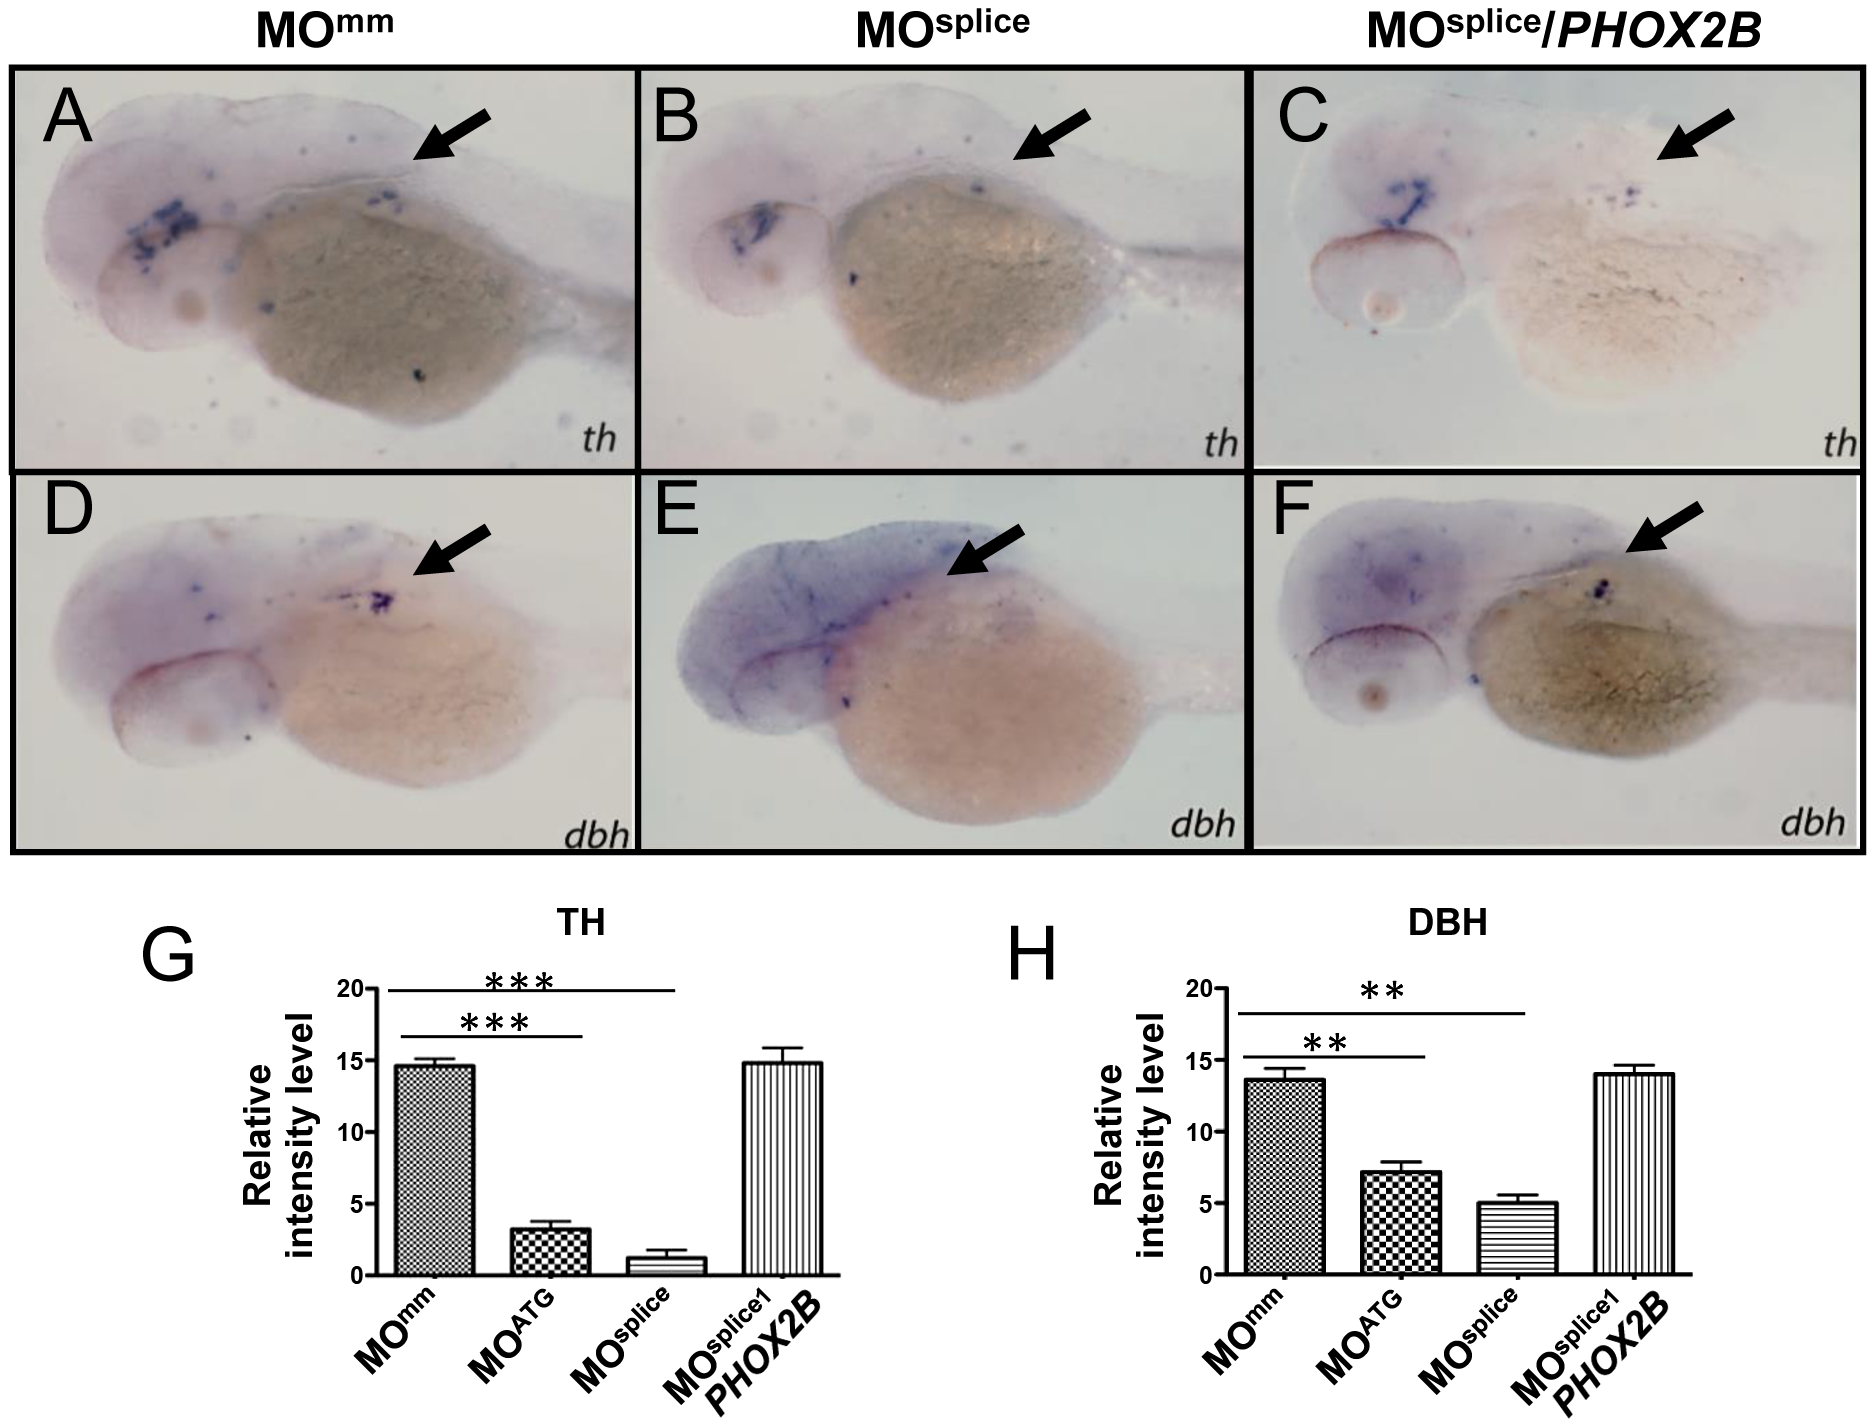 <i>phox2b-</i>deficient embryos show impaired differentiation of sympathetic neurons in the SCG.